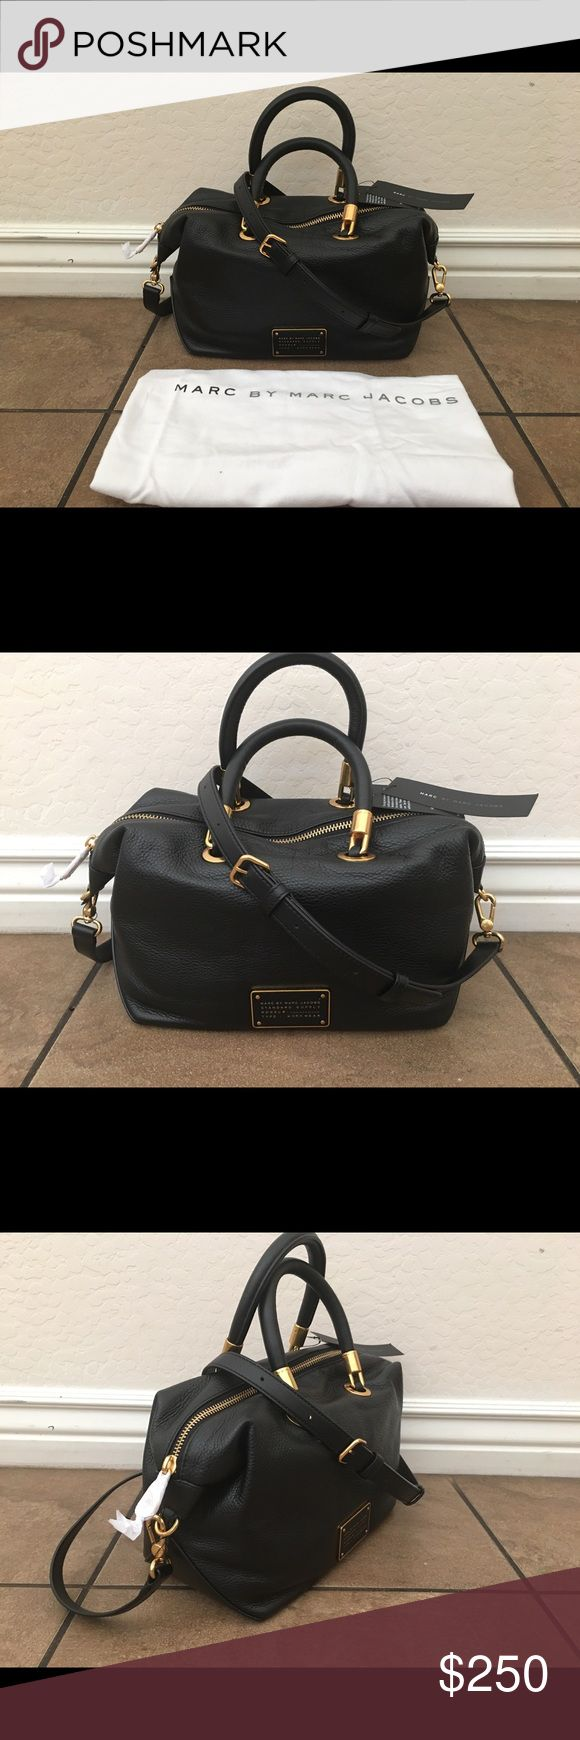 "NWT Marc Jacobs Too Hot To Handle Leather Satchel New with tags! 100% authentic. Color is black. Retail $398. Leather exterior with gold hardware. Dual straps, with longer adjustable shoulder strap. Marc Jacobs engraved plate on front. Interior includes one zipper pocket, and two slide pockets for storage. Measures approx. 11.5"" L X 5""D X 6.5""H Dual strap drop length measures approx. 5"" long  Adjustable shoulder strap drop length can measure up to approx. 23.5""  Dust bag included Marc by…"